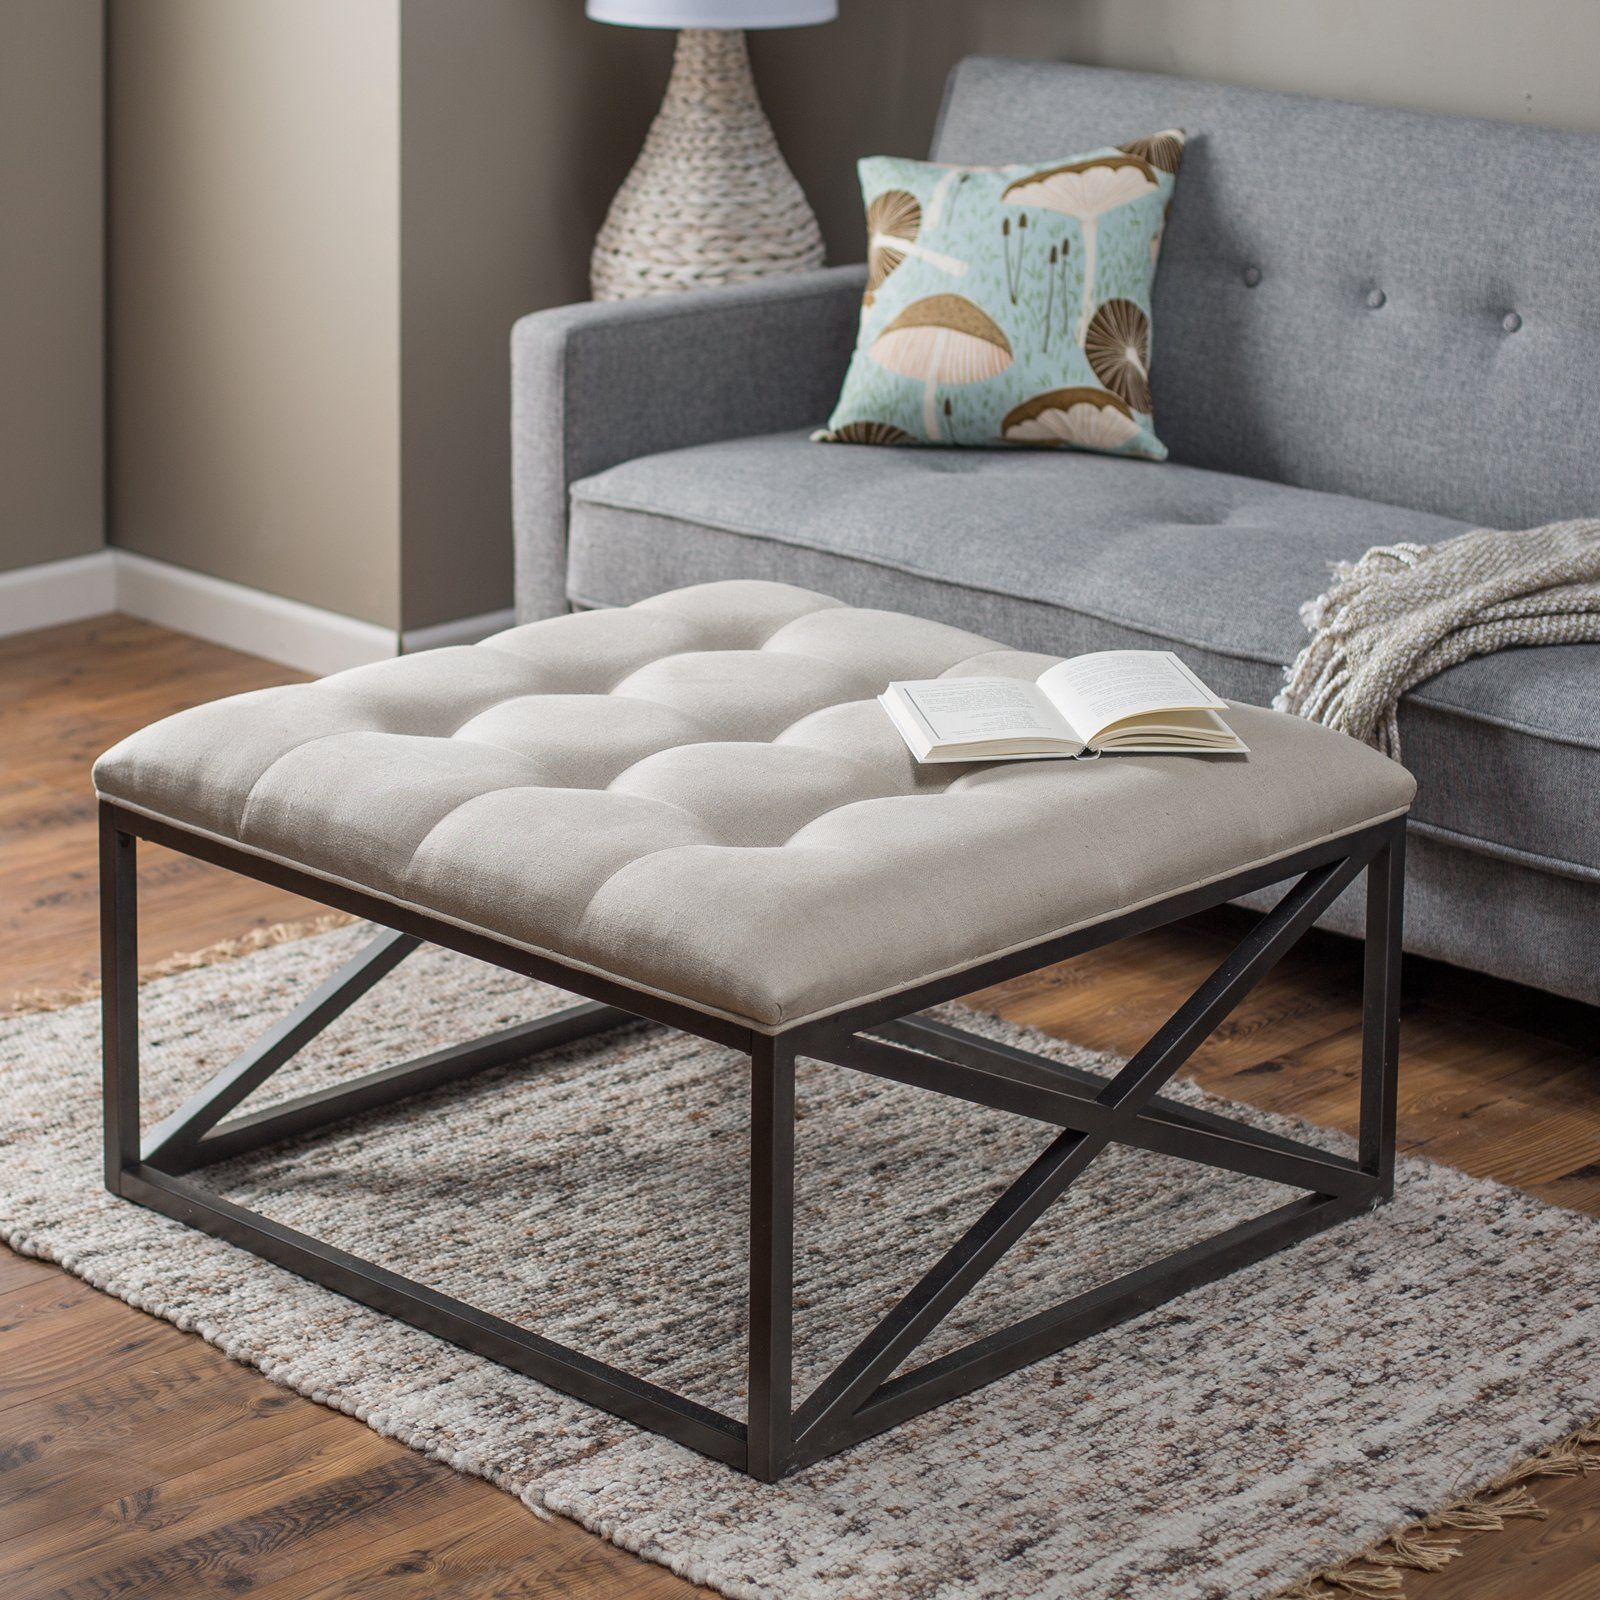 Have To Have It Belham Living Grayson Tufted Ottoman